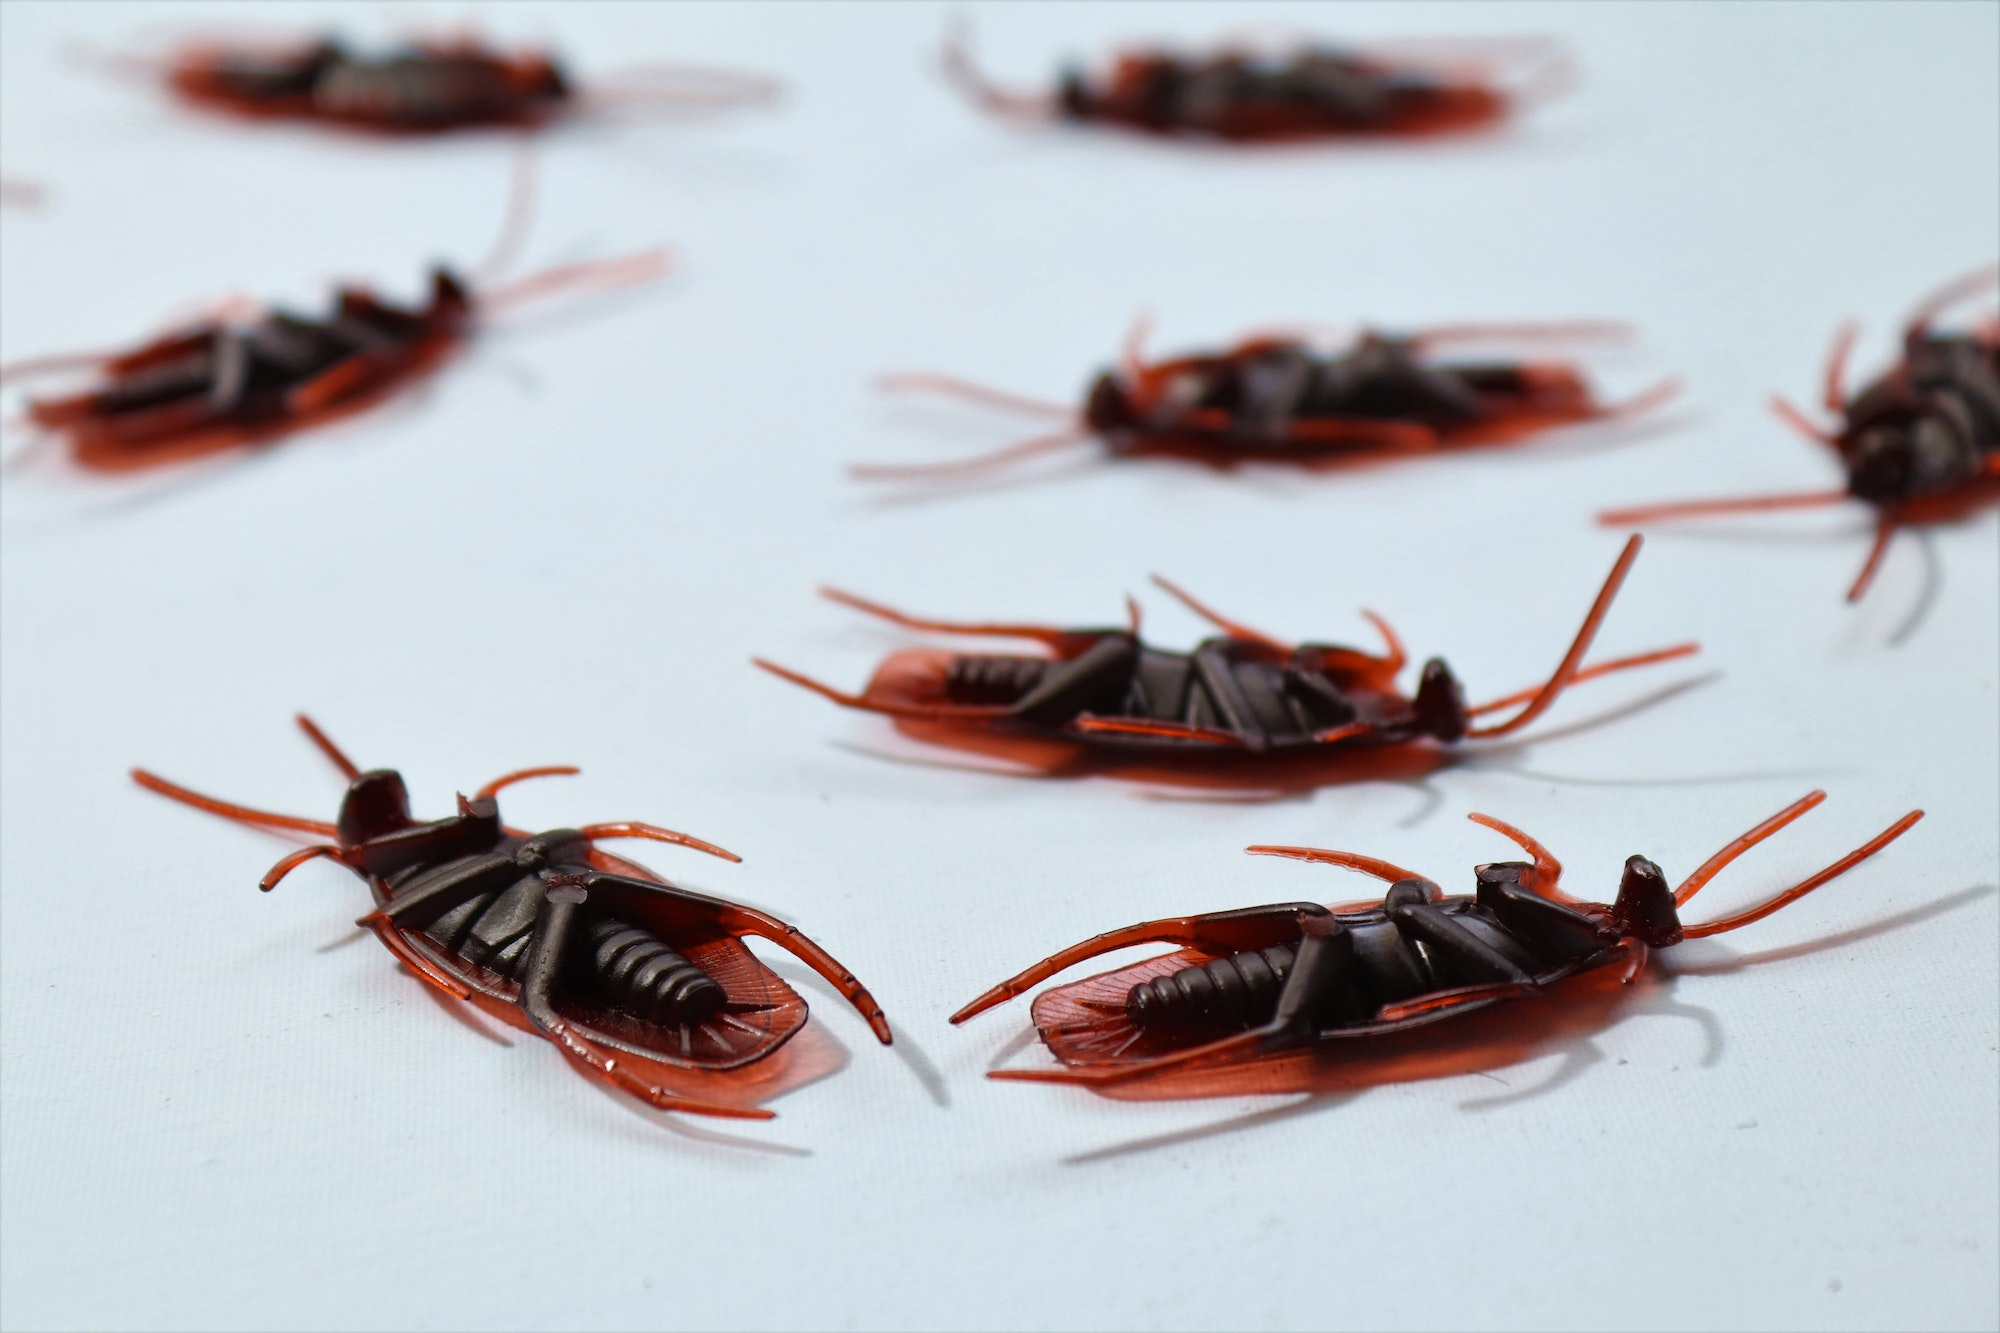 4 Steps To Finding Pest Control Services In Adelaide South Australia 3